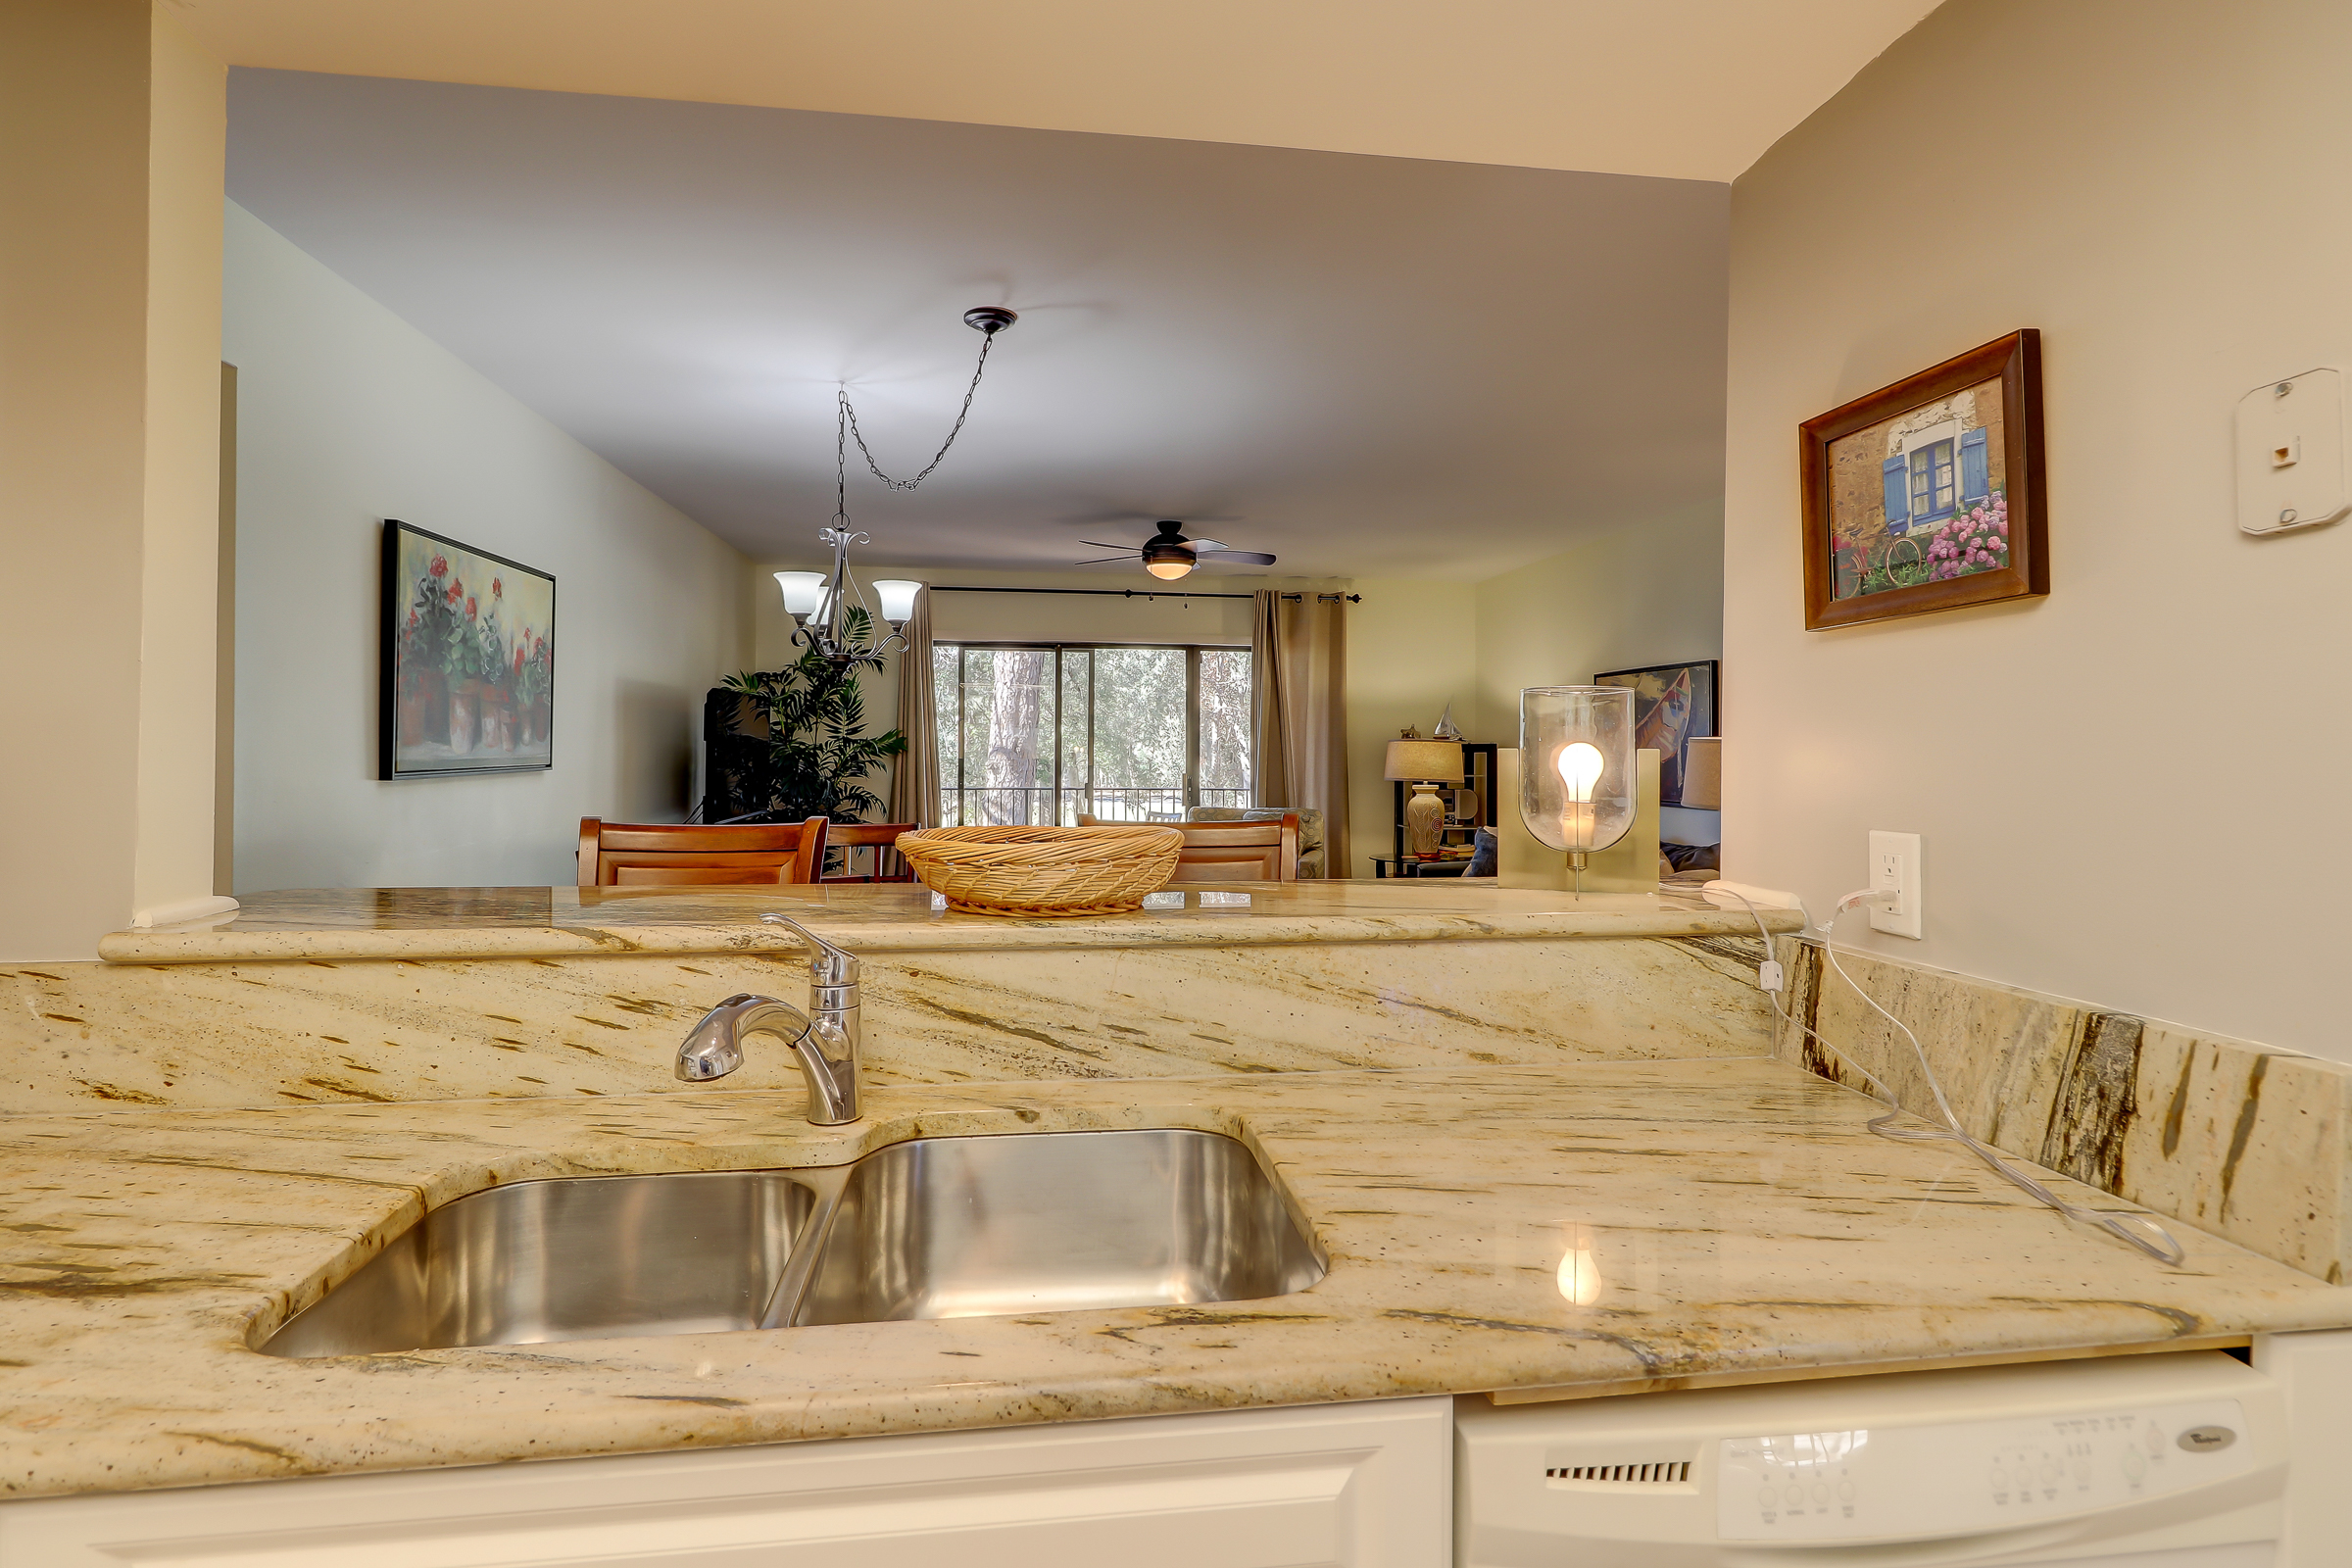 The kitchen is open to the living room and dining areas, making entertaining fun and easy